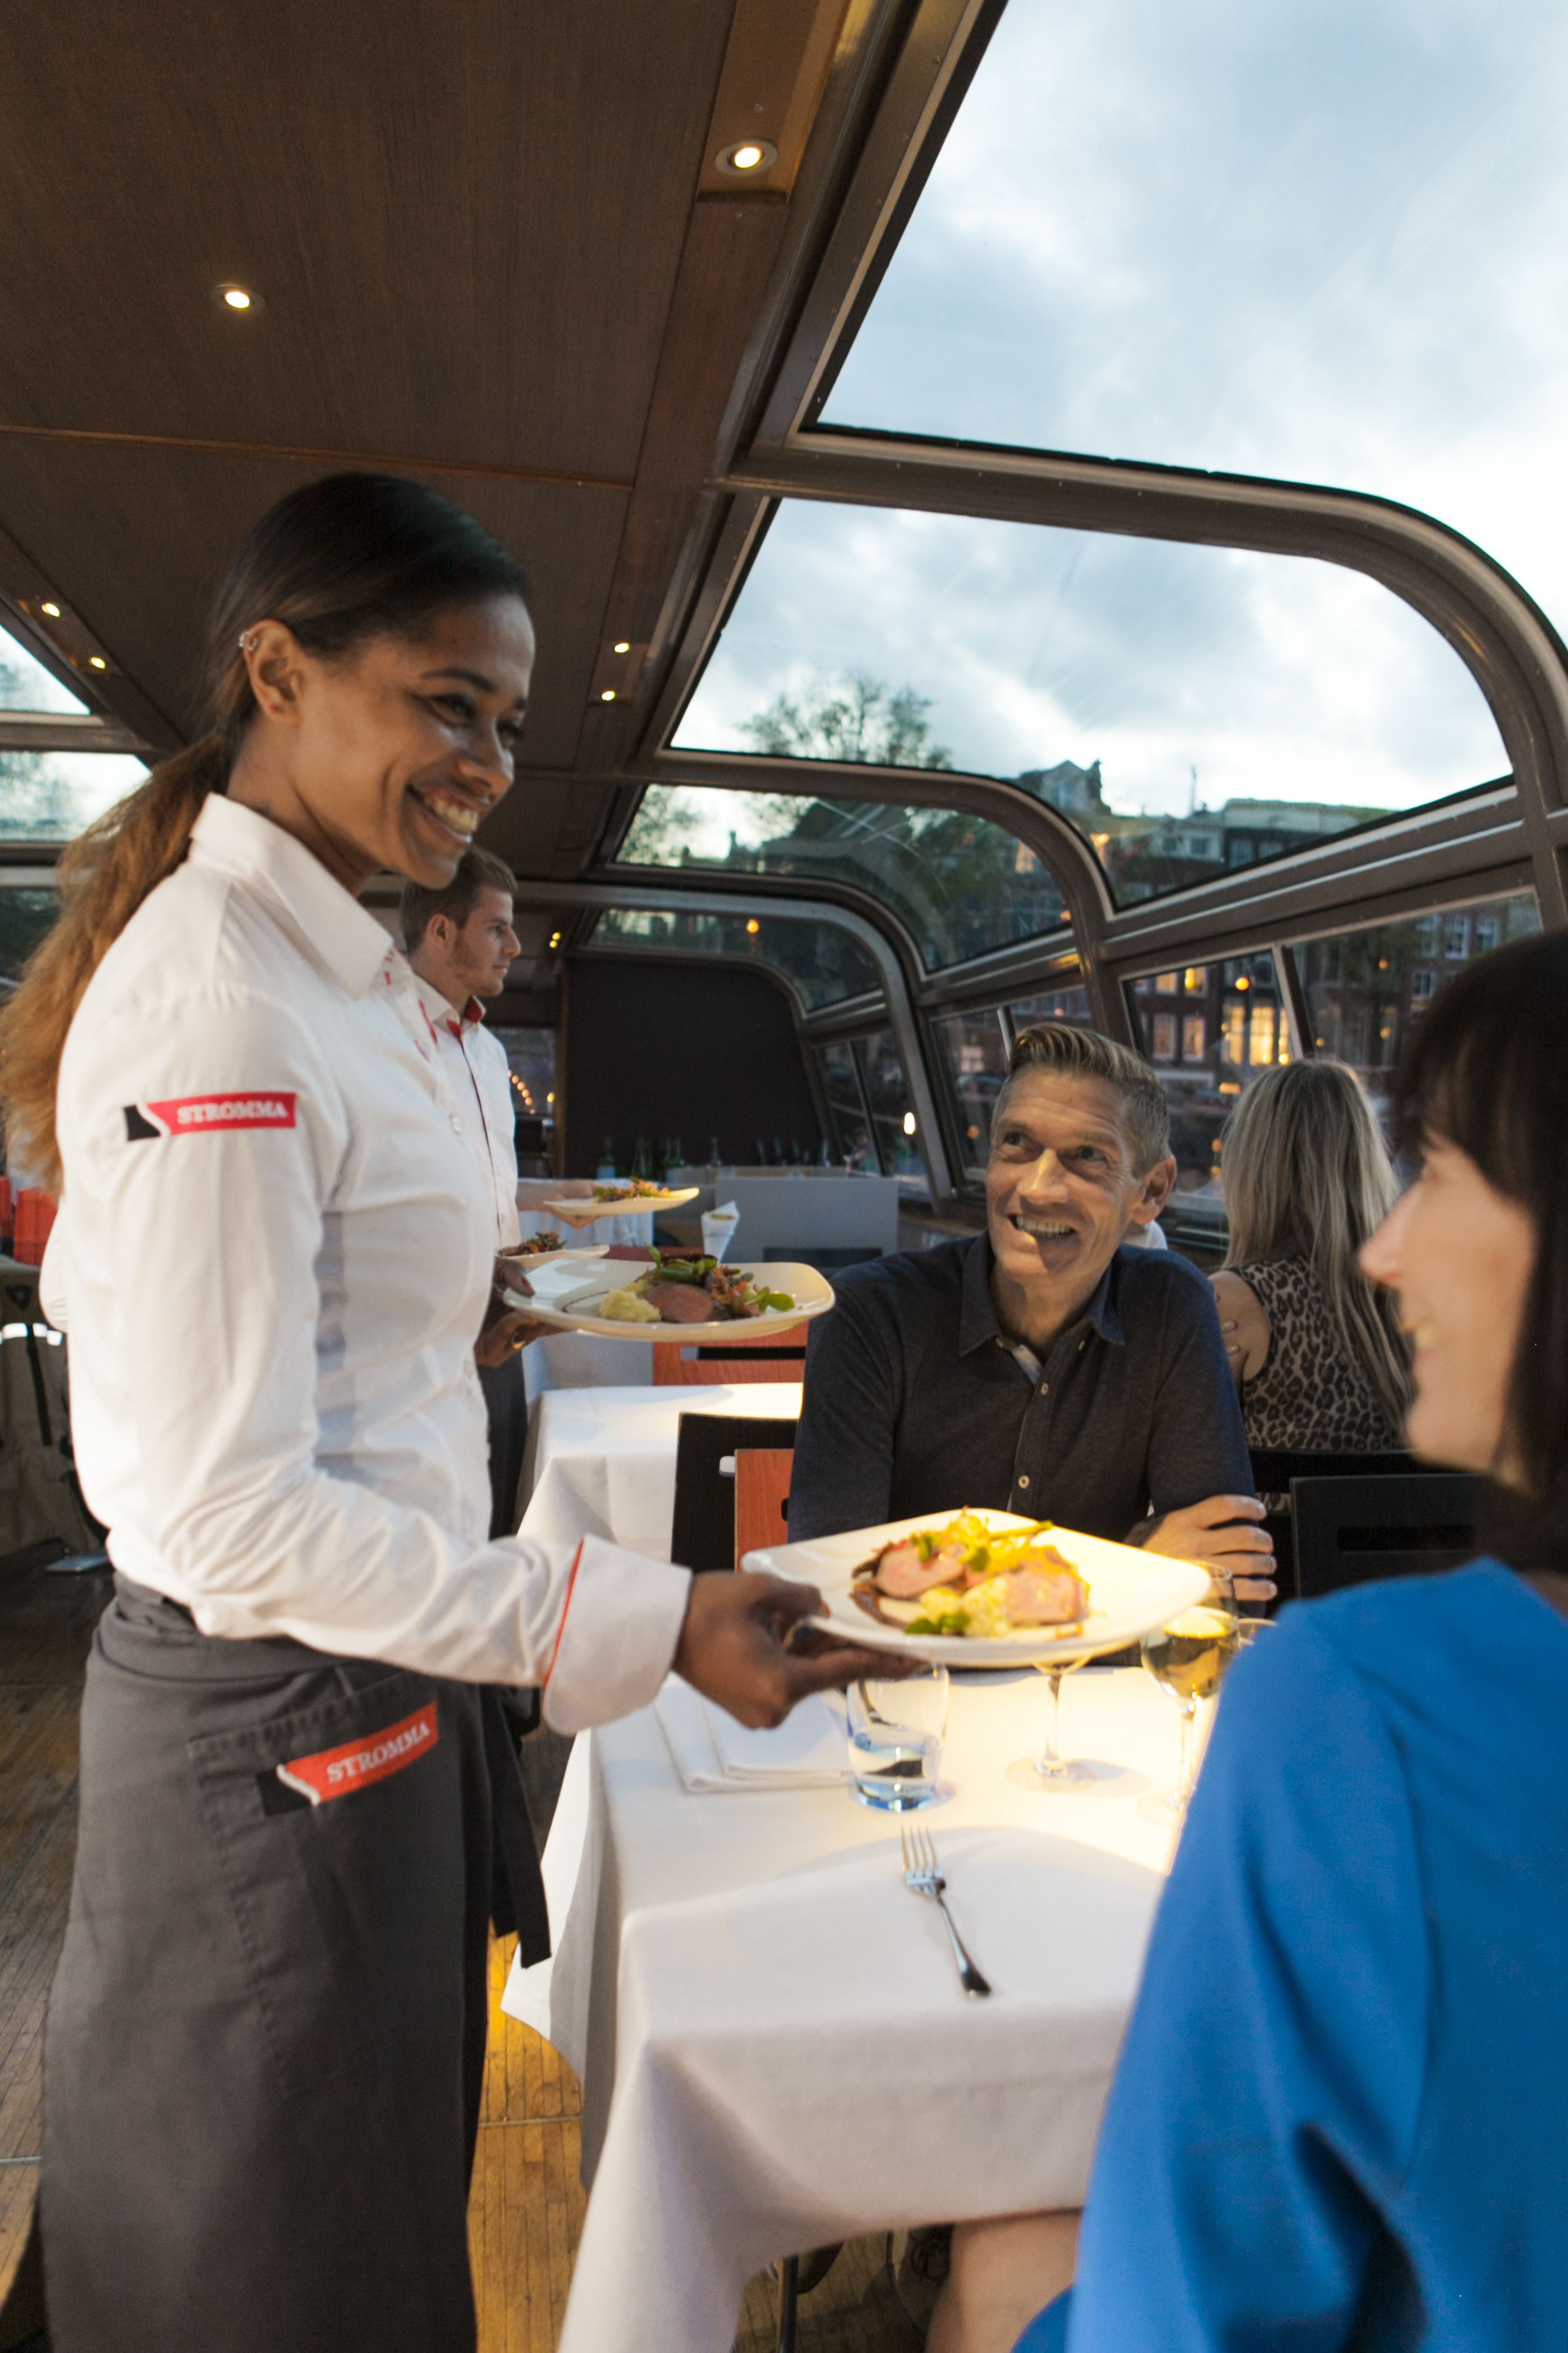 CTA Amsterdam Dinner Cruise_Serving food.jpg